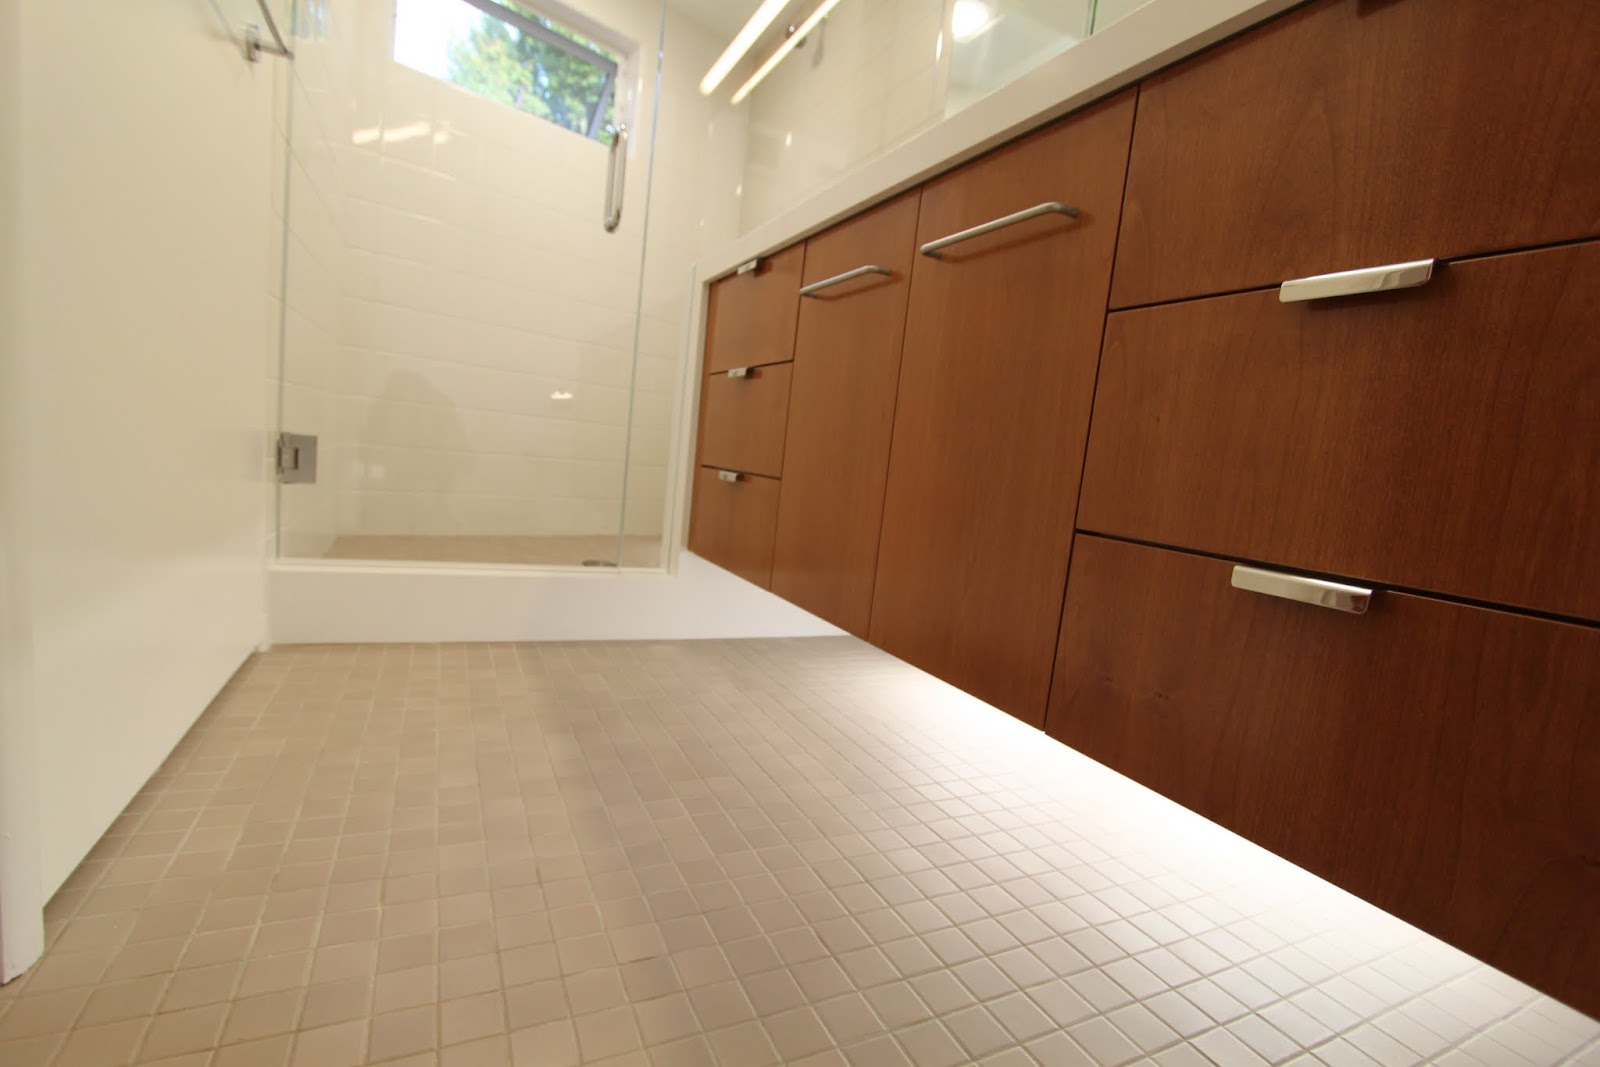 Top five favorite features mid century bathroom remodel for The bathroom designer